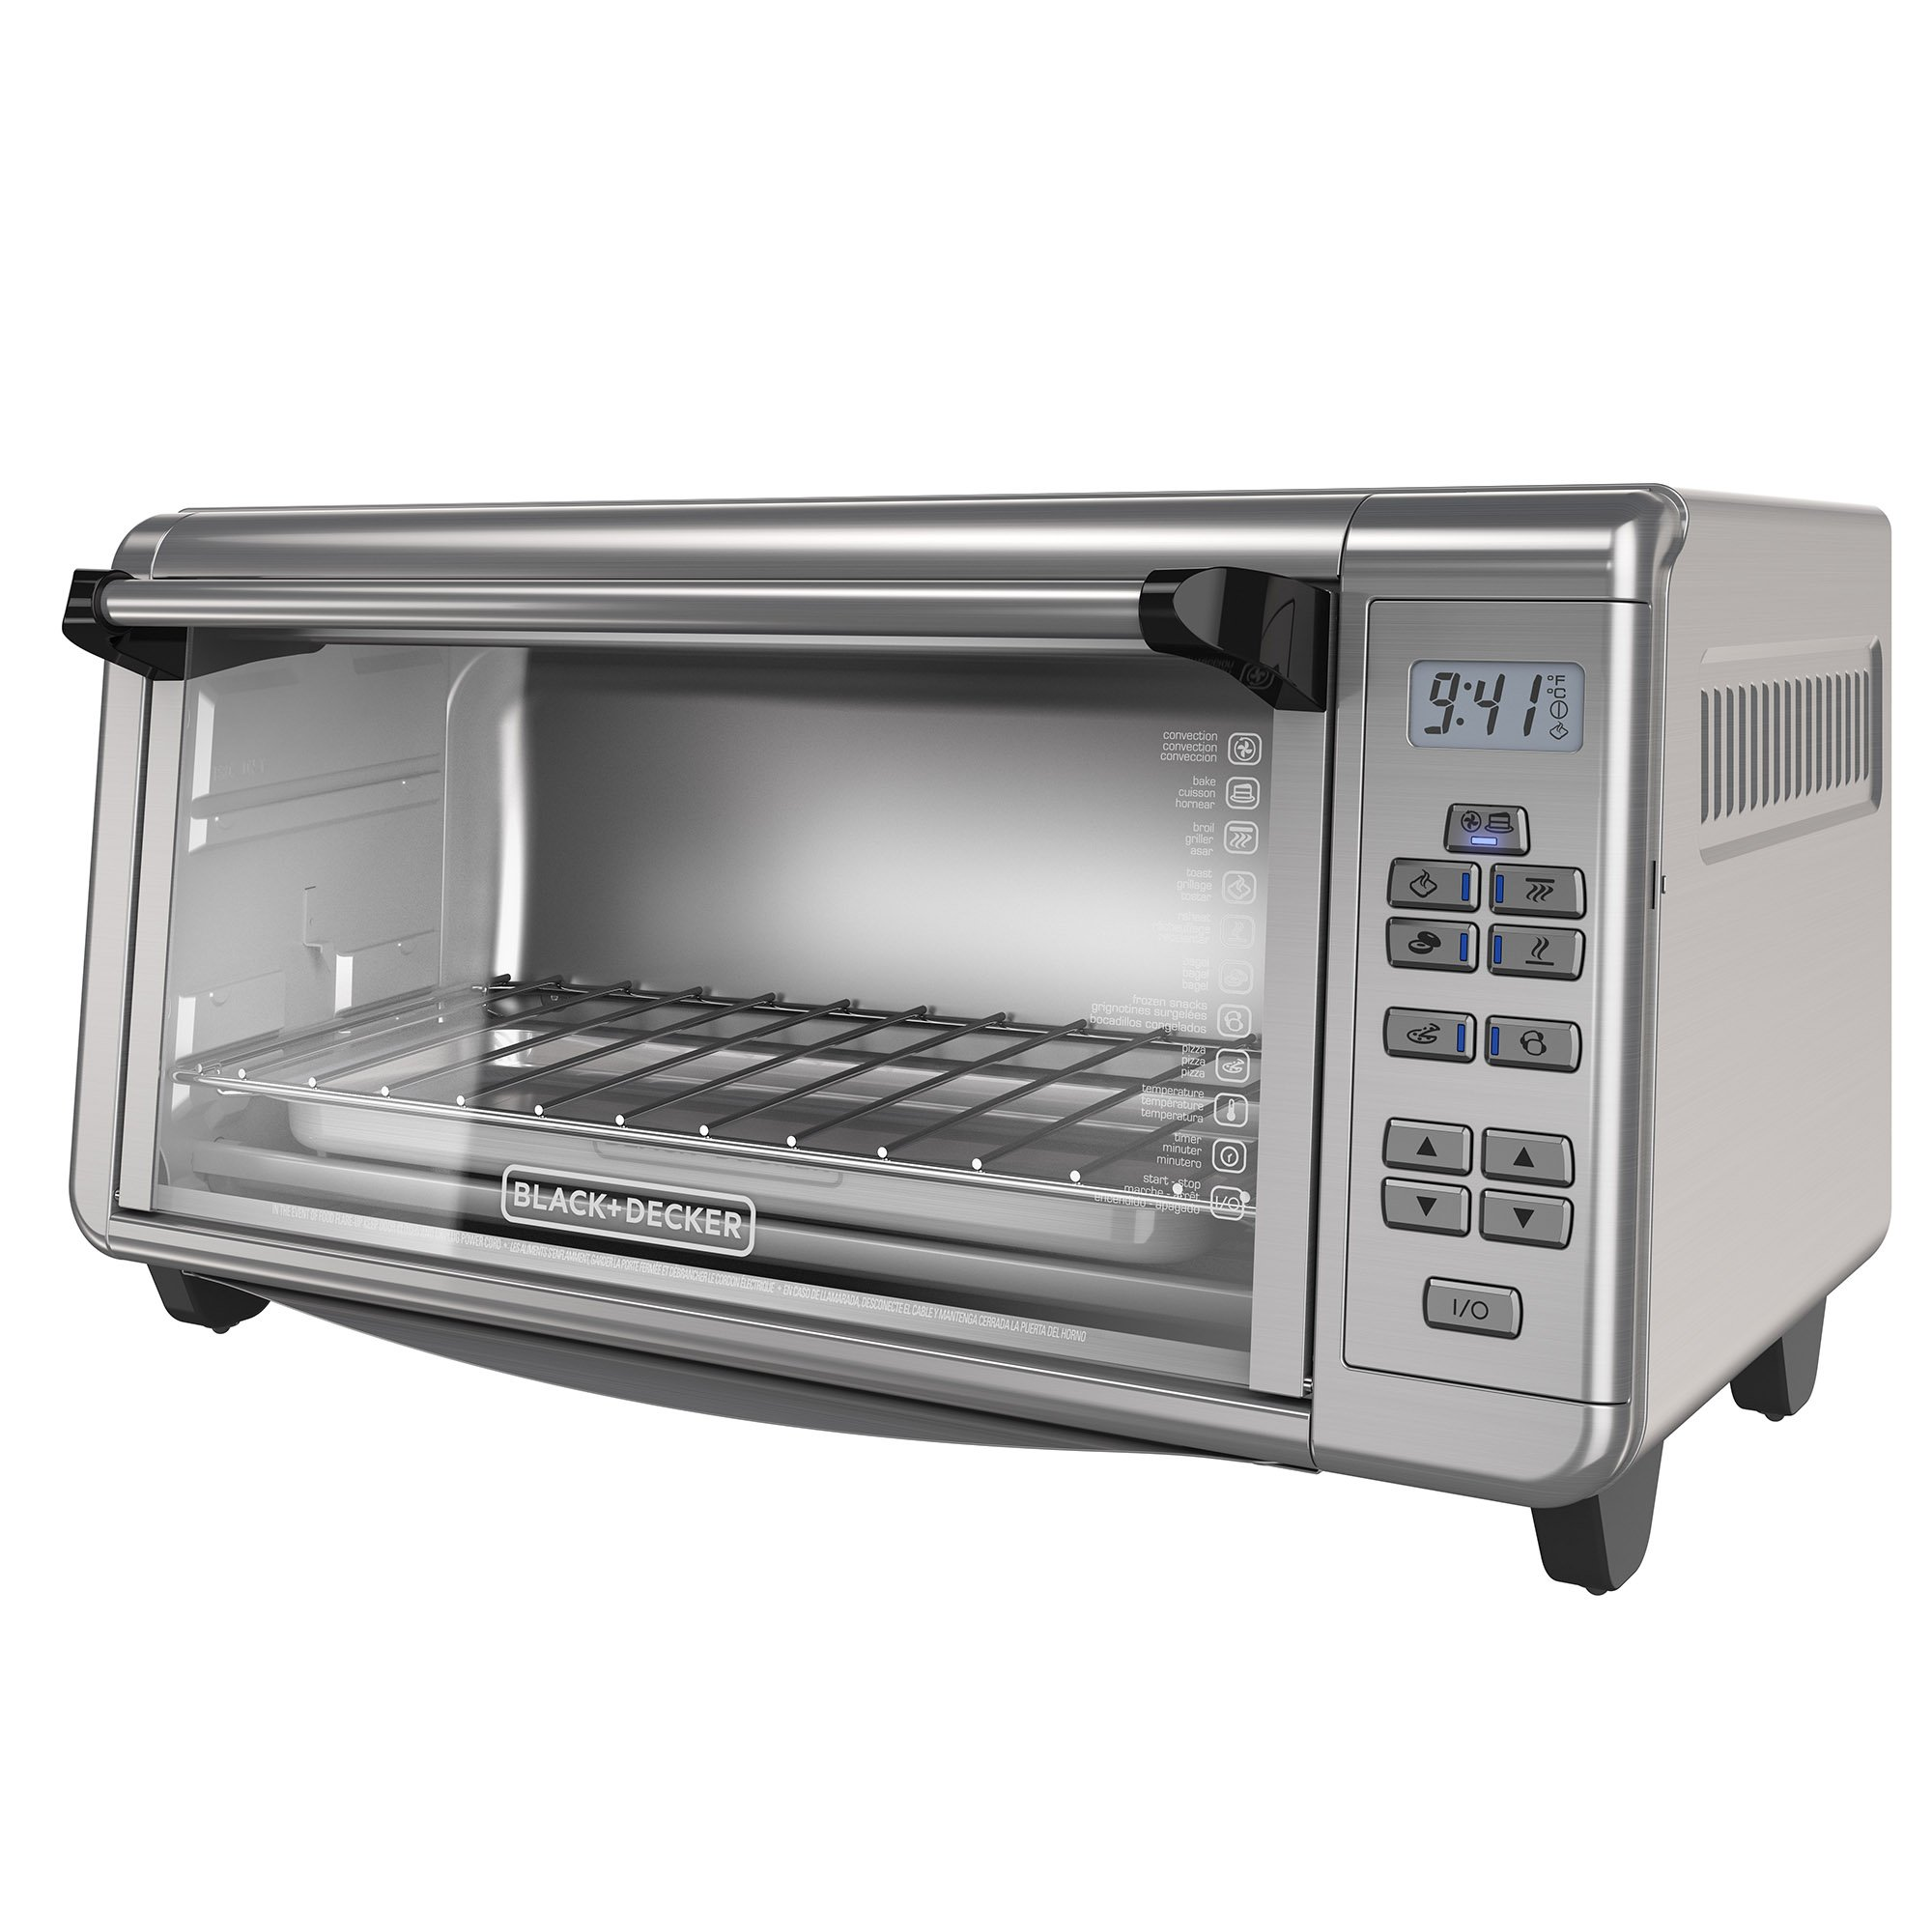 Black & Decker TO3290XSD 8-slice Digital Extra-wide Convection Oven by Black & Decker